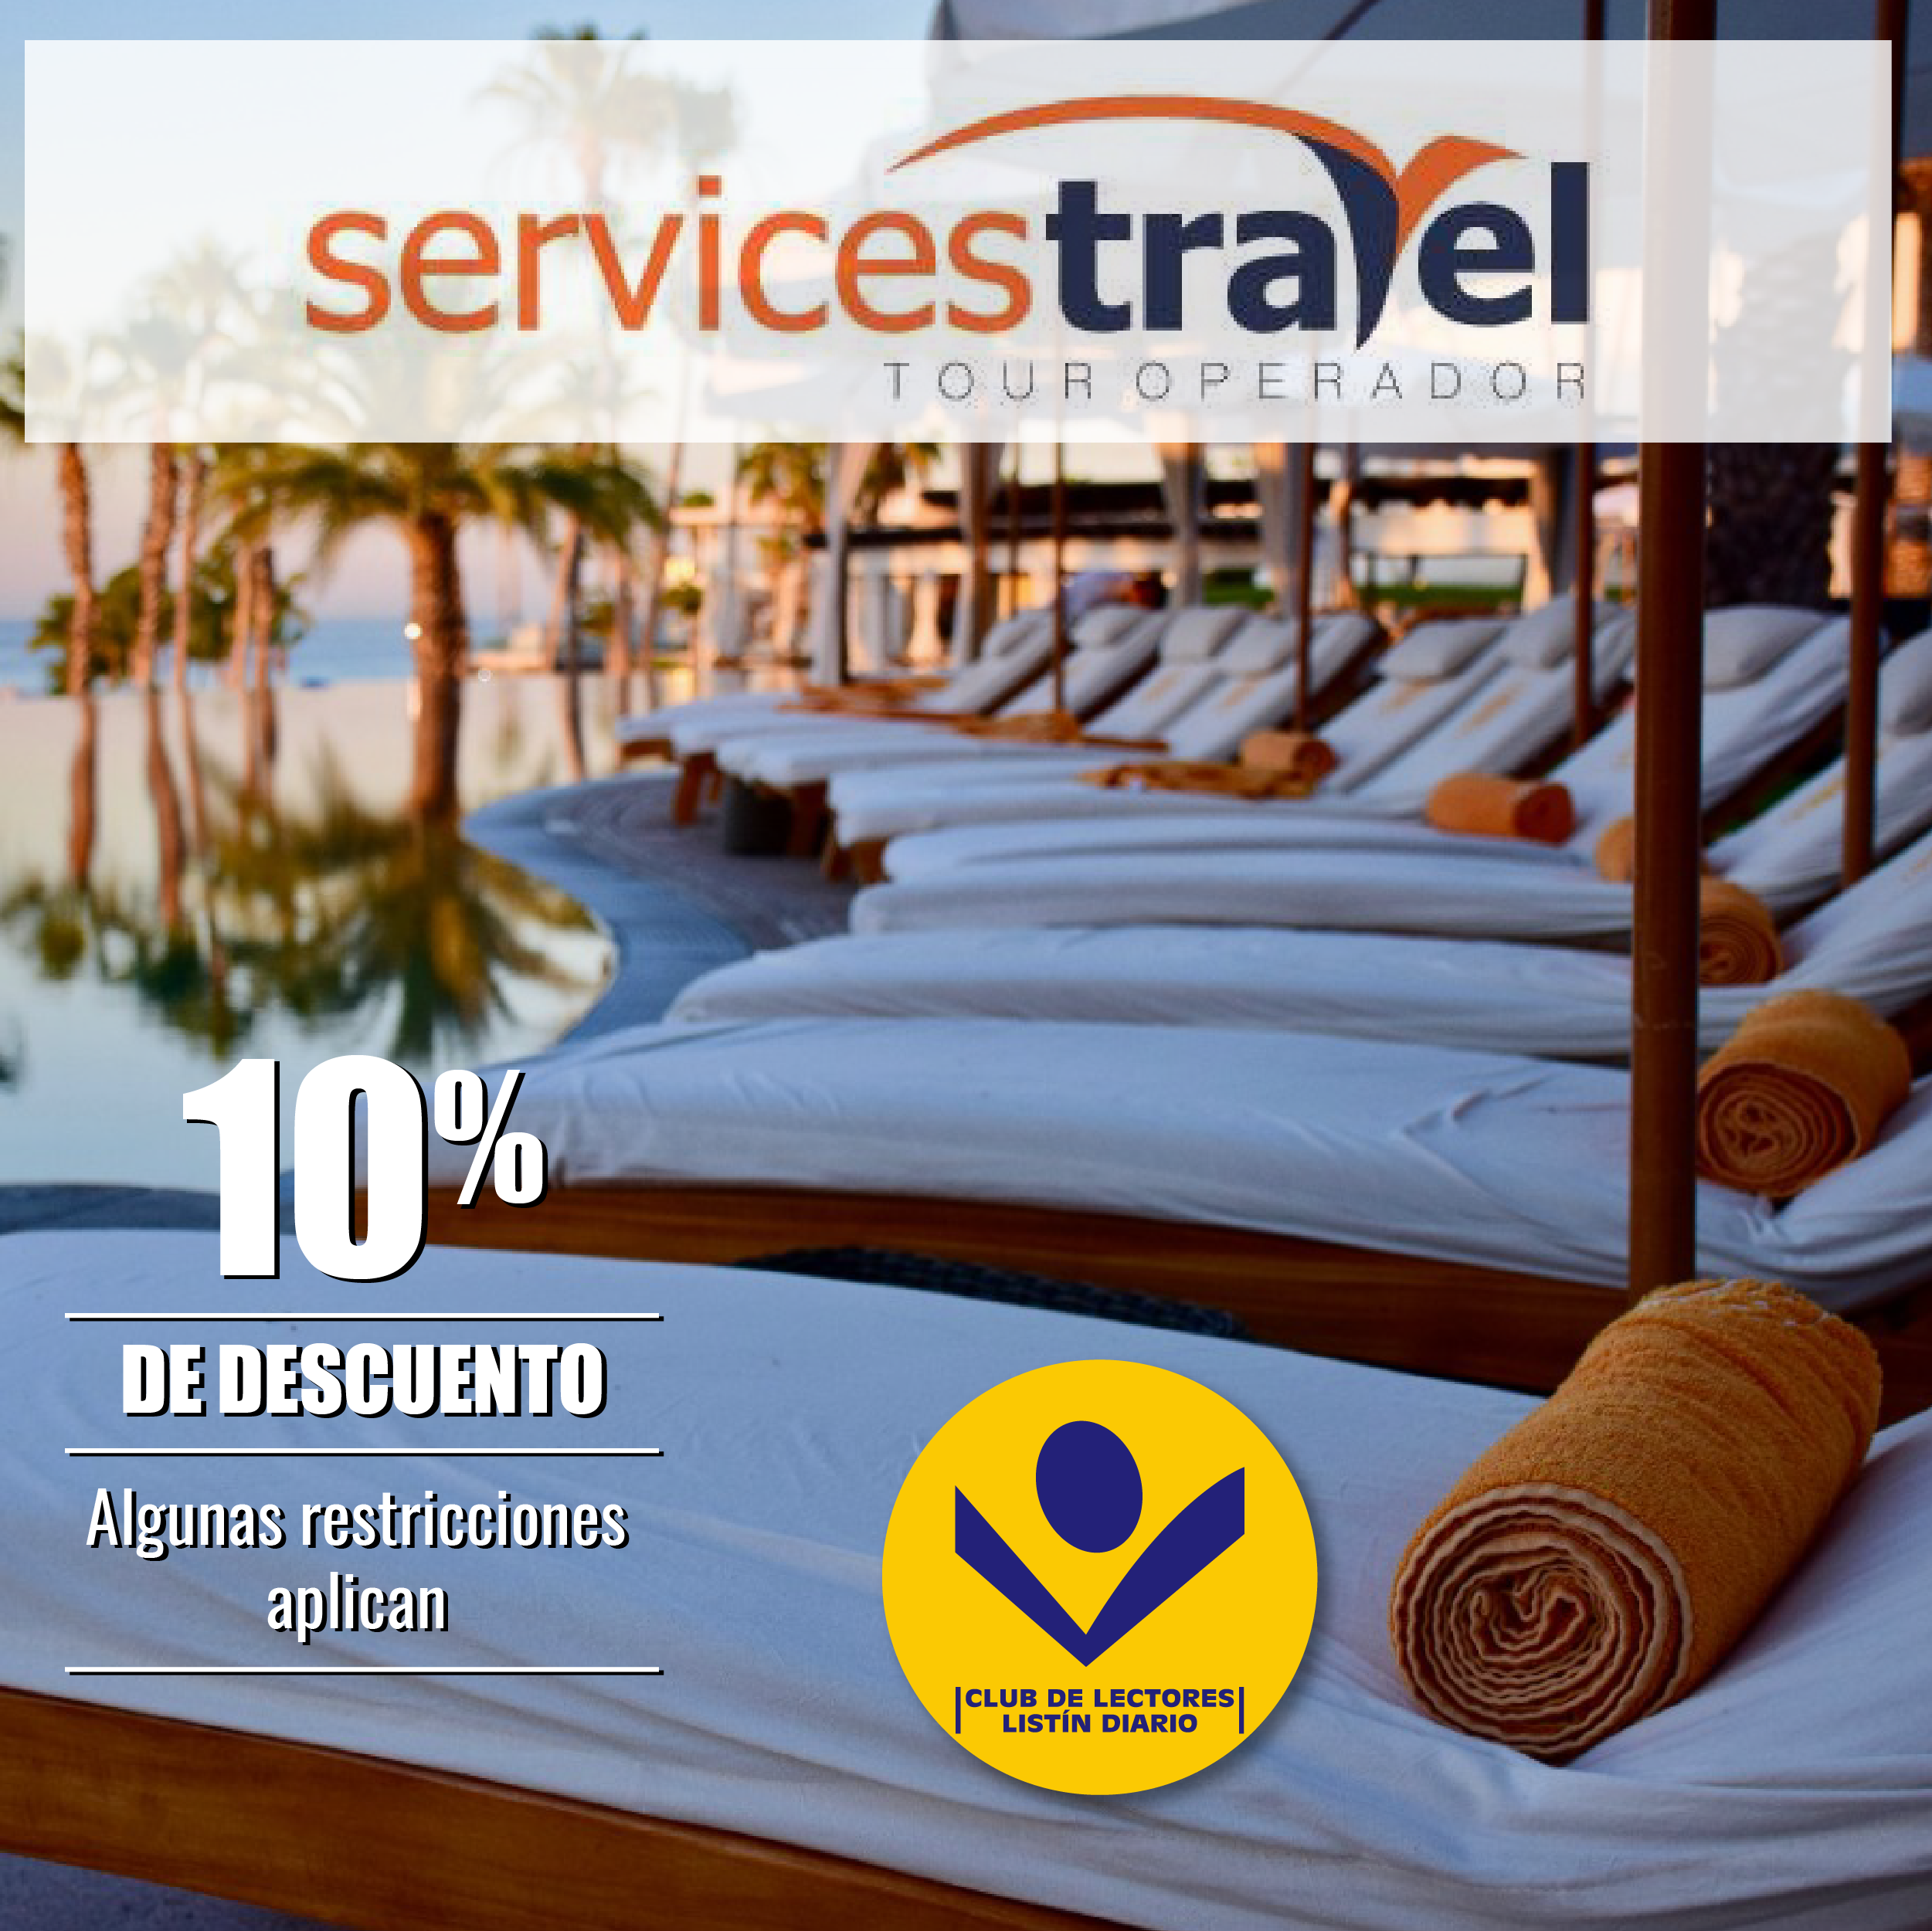 Services Travel